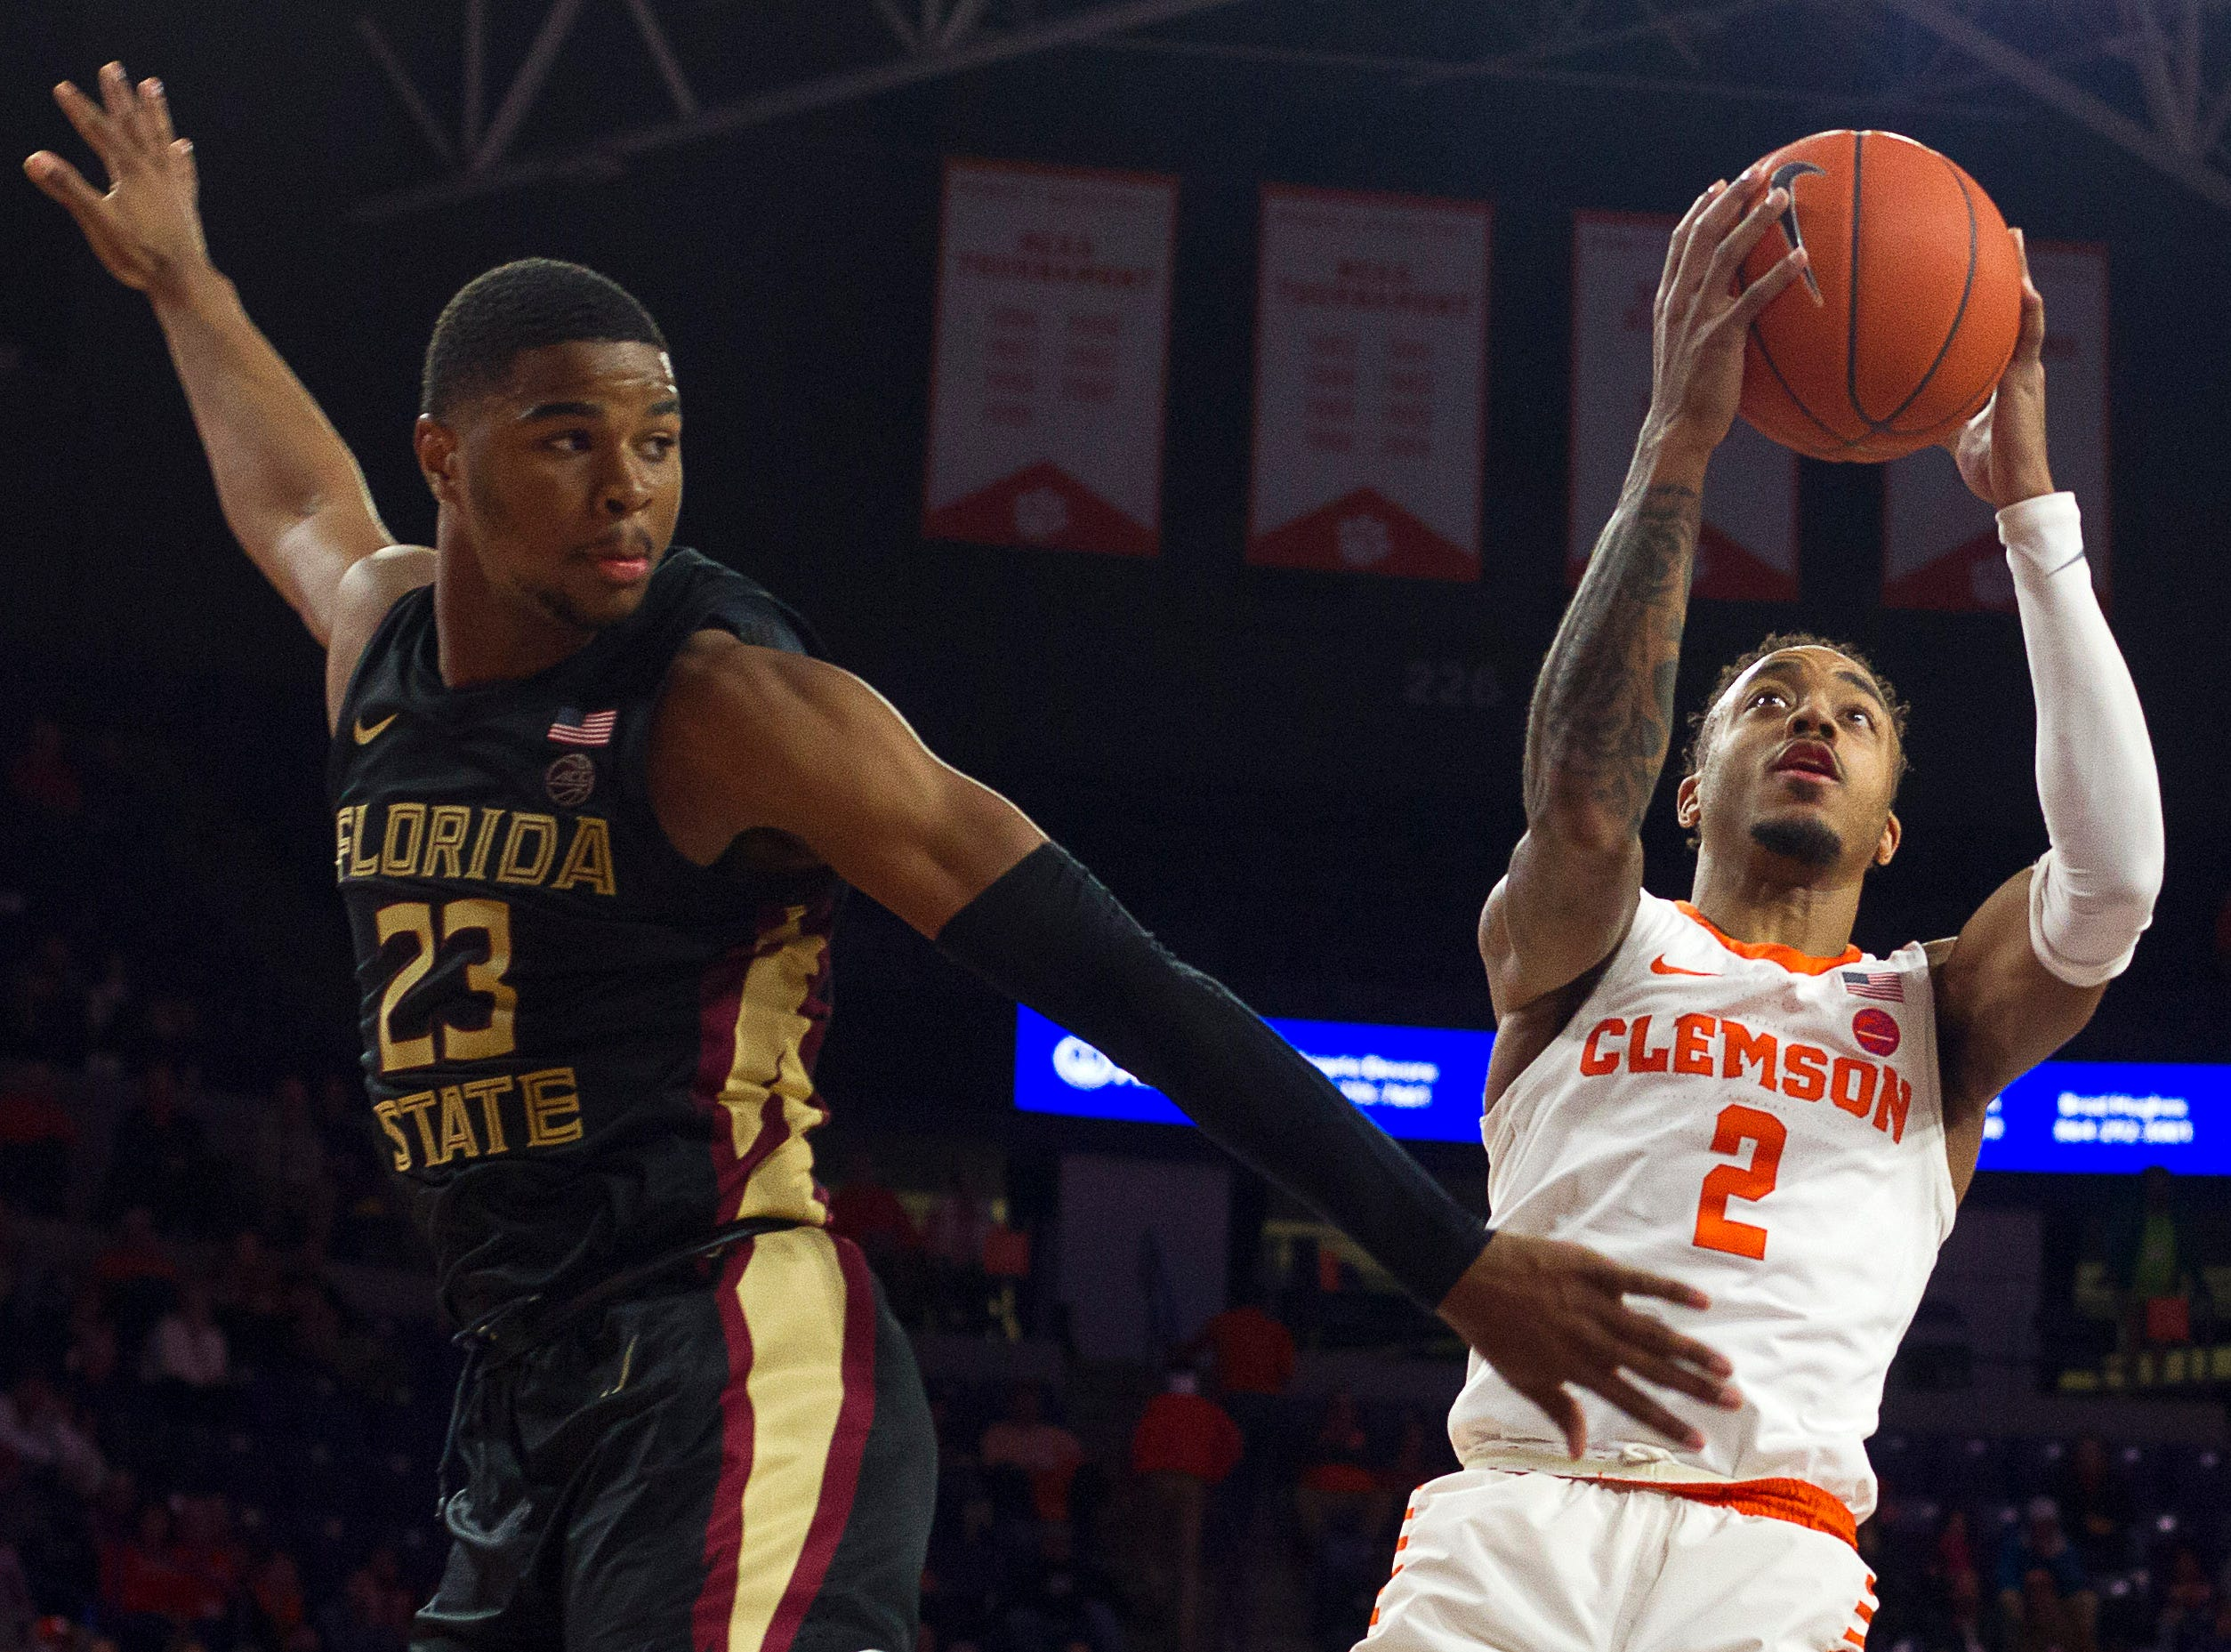 Feb 19, 2019; Clemson, SC, USA; Clemson Tigers guard Marcquise Reed (2) shoots the ball past Florida State Seminoles guard M.J. Walker (23) during the second half at Littlejohn Coliseum. Mandatory Credit: Joshua S. Kelly-USA TODAY Sports